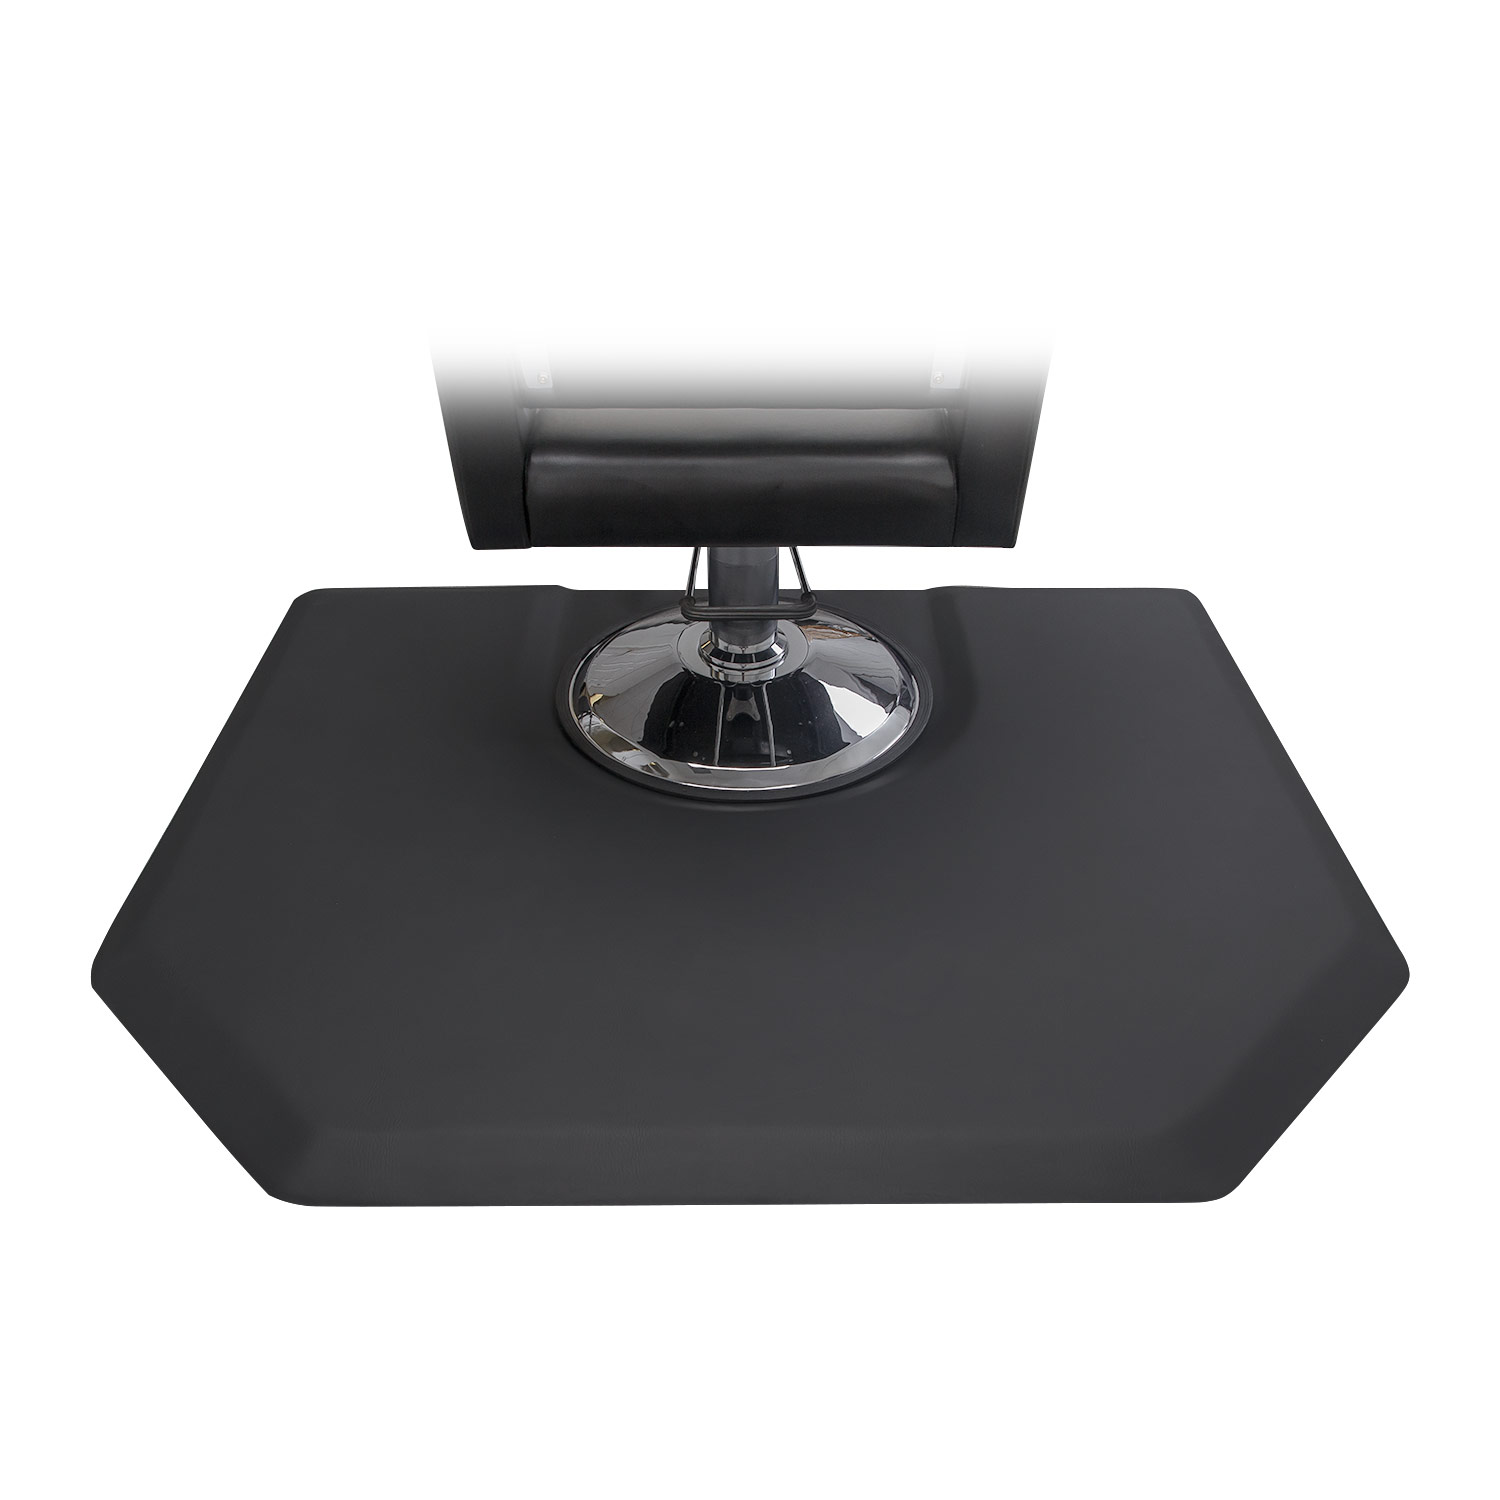 Hexagon 4x5 Salon Anti-Fatigue Mat Round Impression alternative product image 4